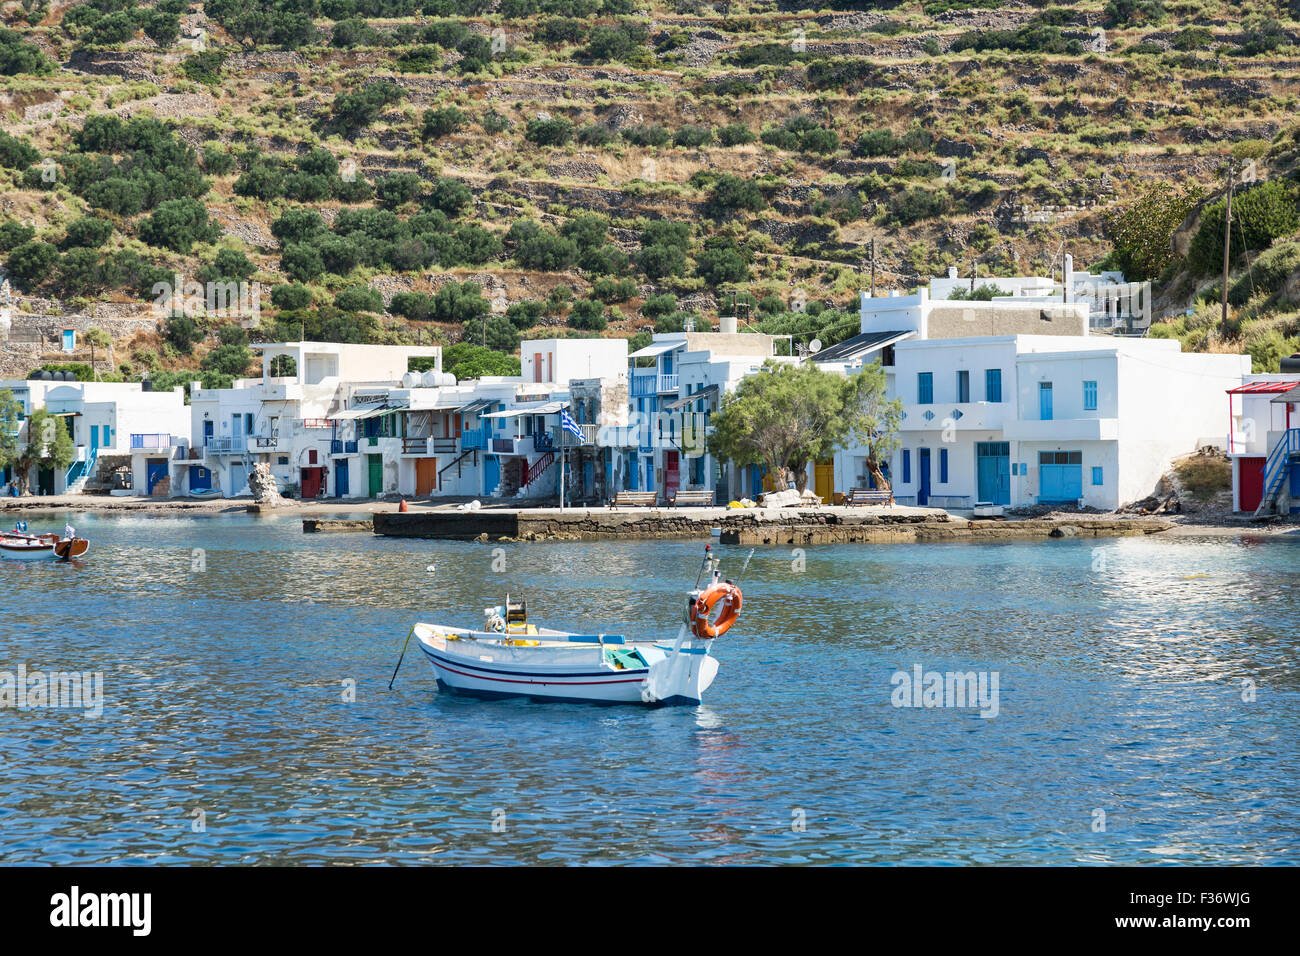 Kilma is a small fishing village with traditional shelters for boats on the Cyclades island of Milos Greece - Stock Image